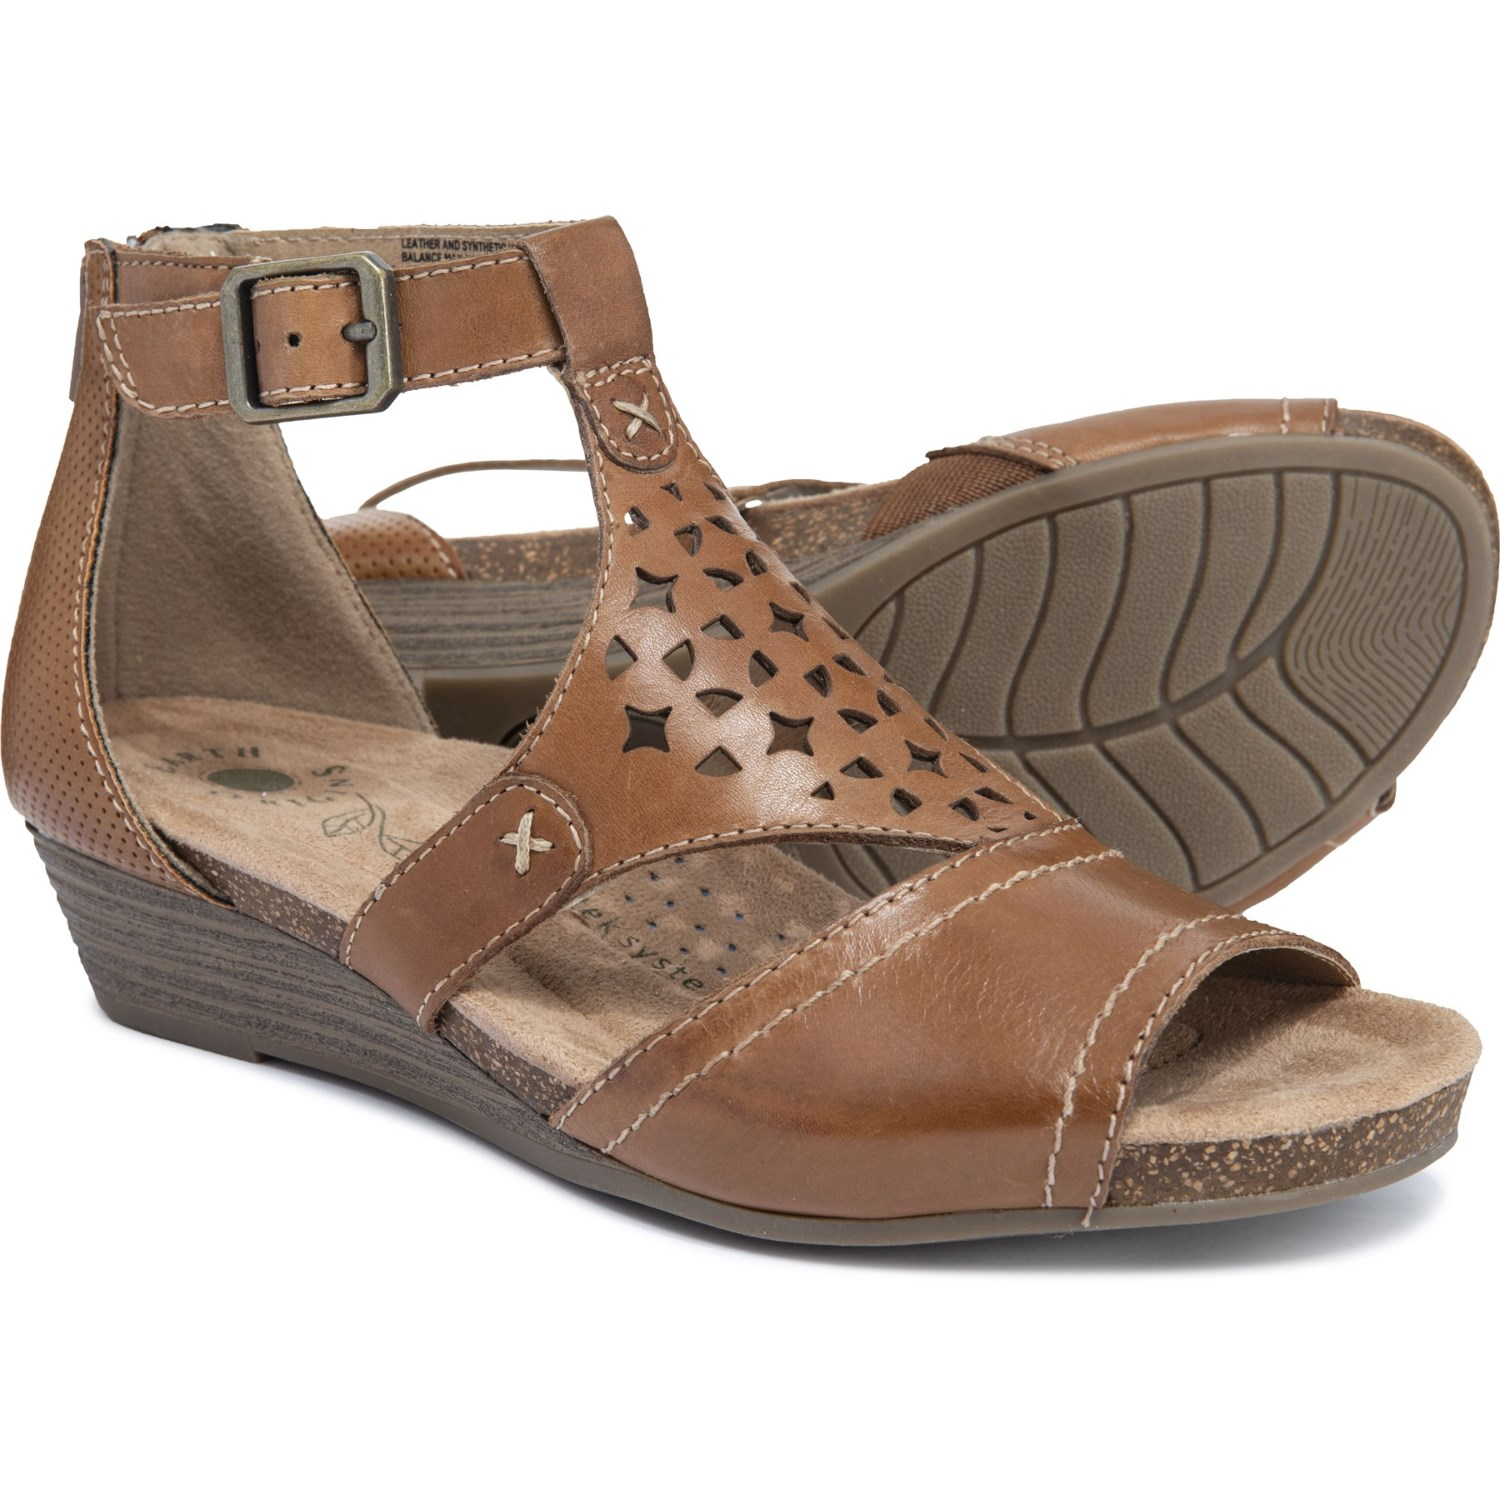 d926fec0cff2 Earth Origins Hermia T-Strap Sandals - Leather (For Women) in Alpaca 2